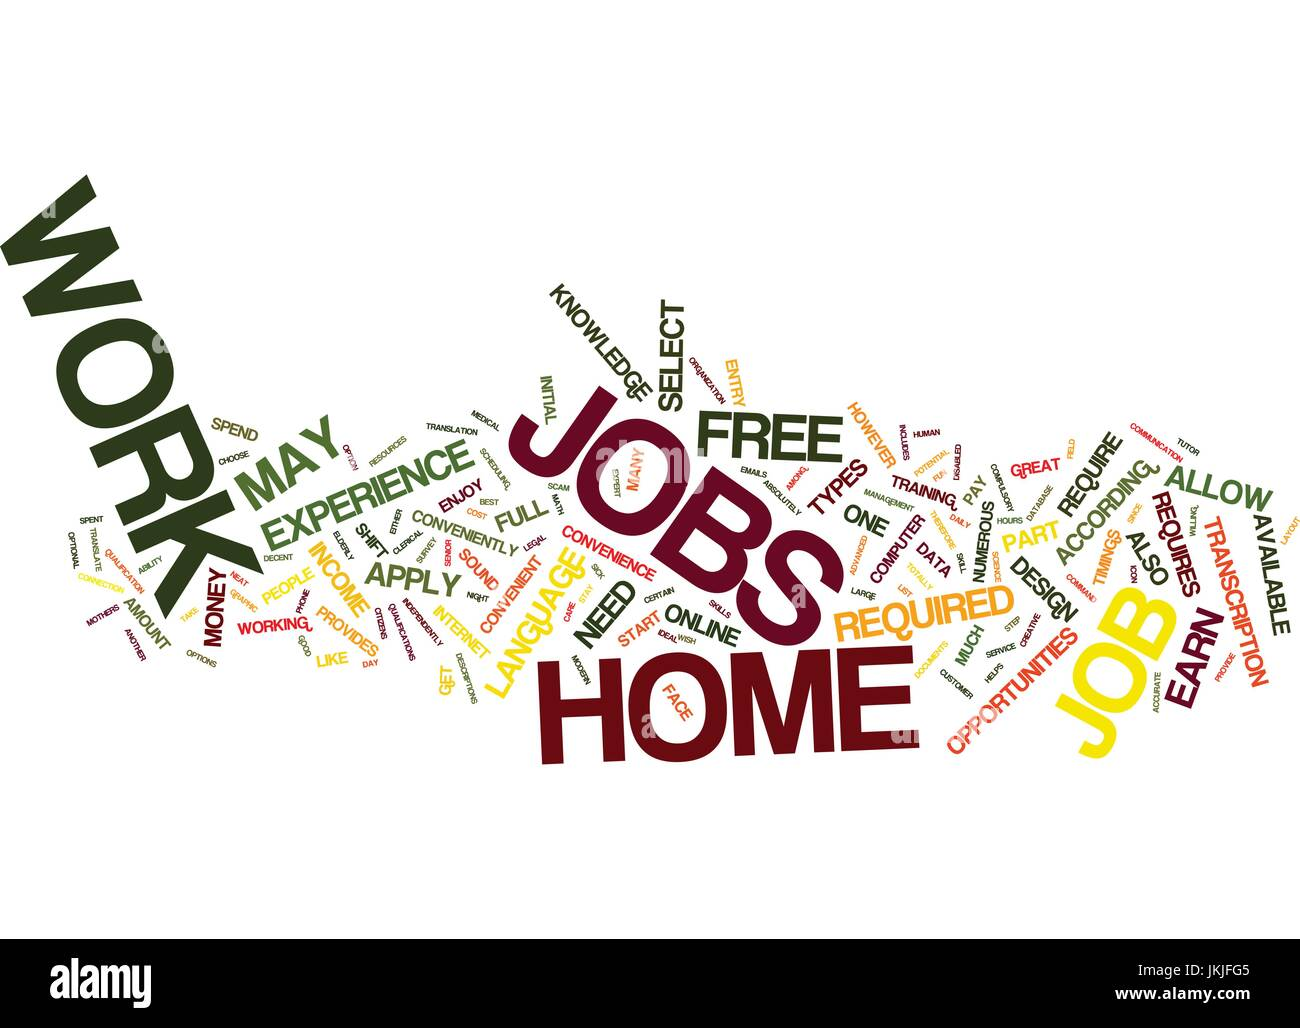 FREE WORK AT HOME JOBS Text Background Word Cloud Concept Stock ...